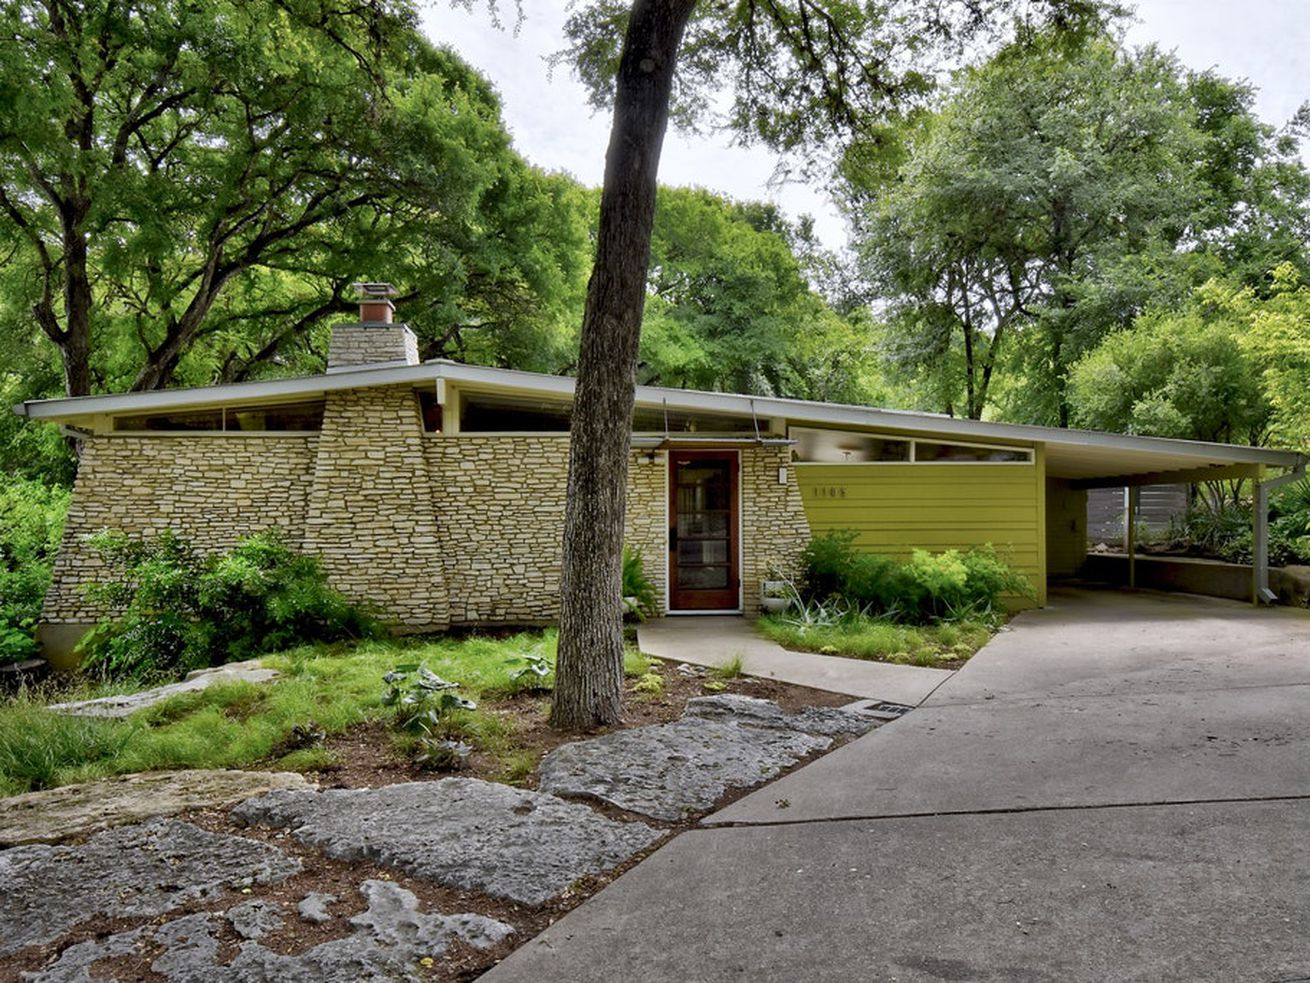 An exterior view of a midcentury modern house in Austin. There is a concrete driveway, a stone wall, and a green exterior wall.